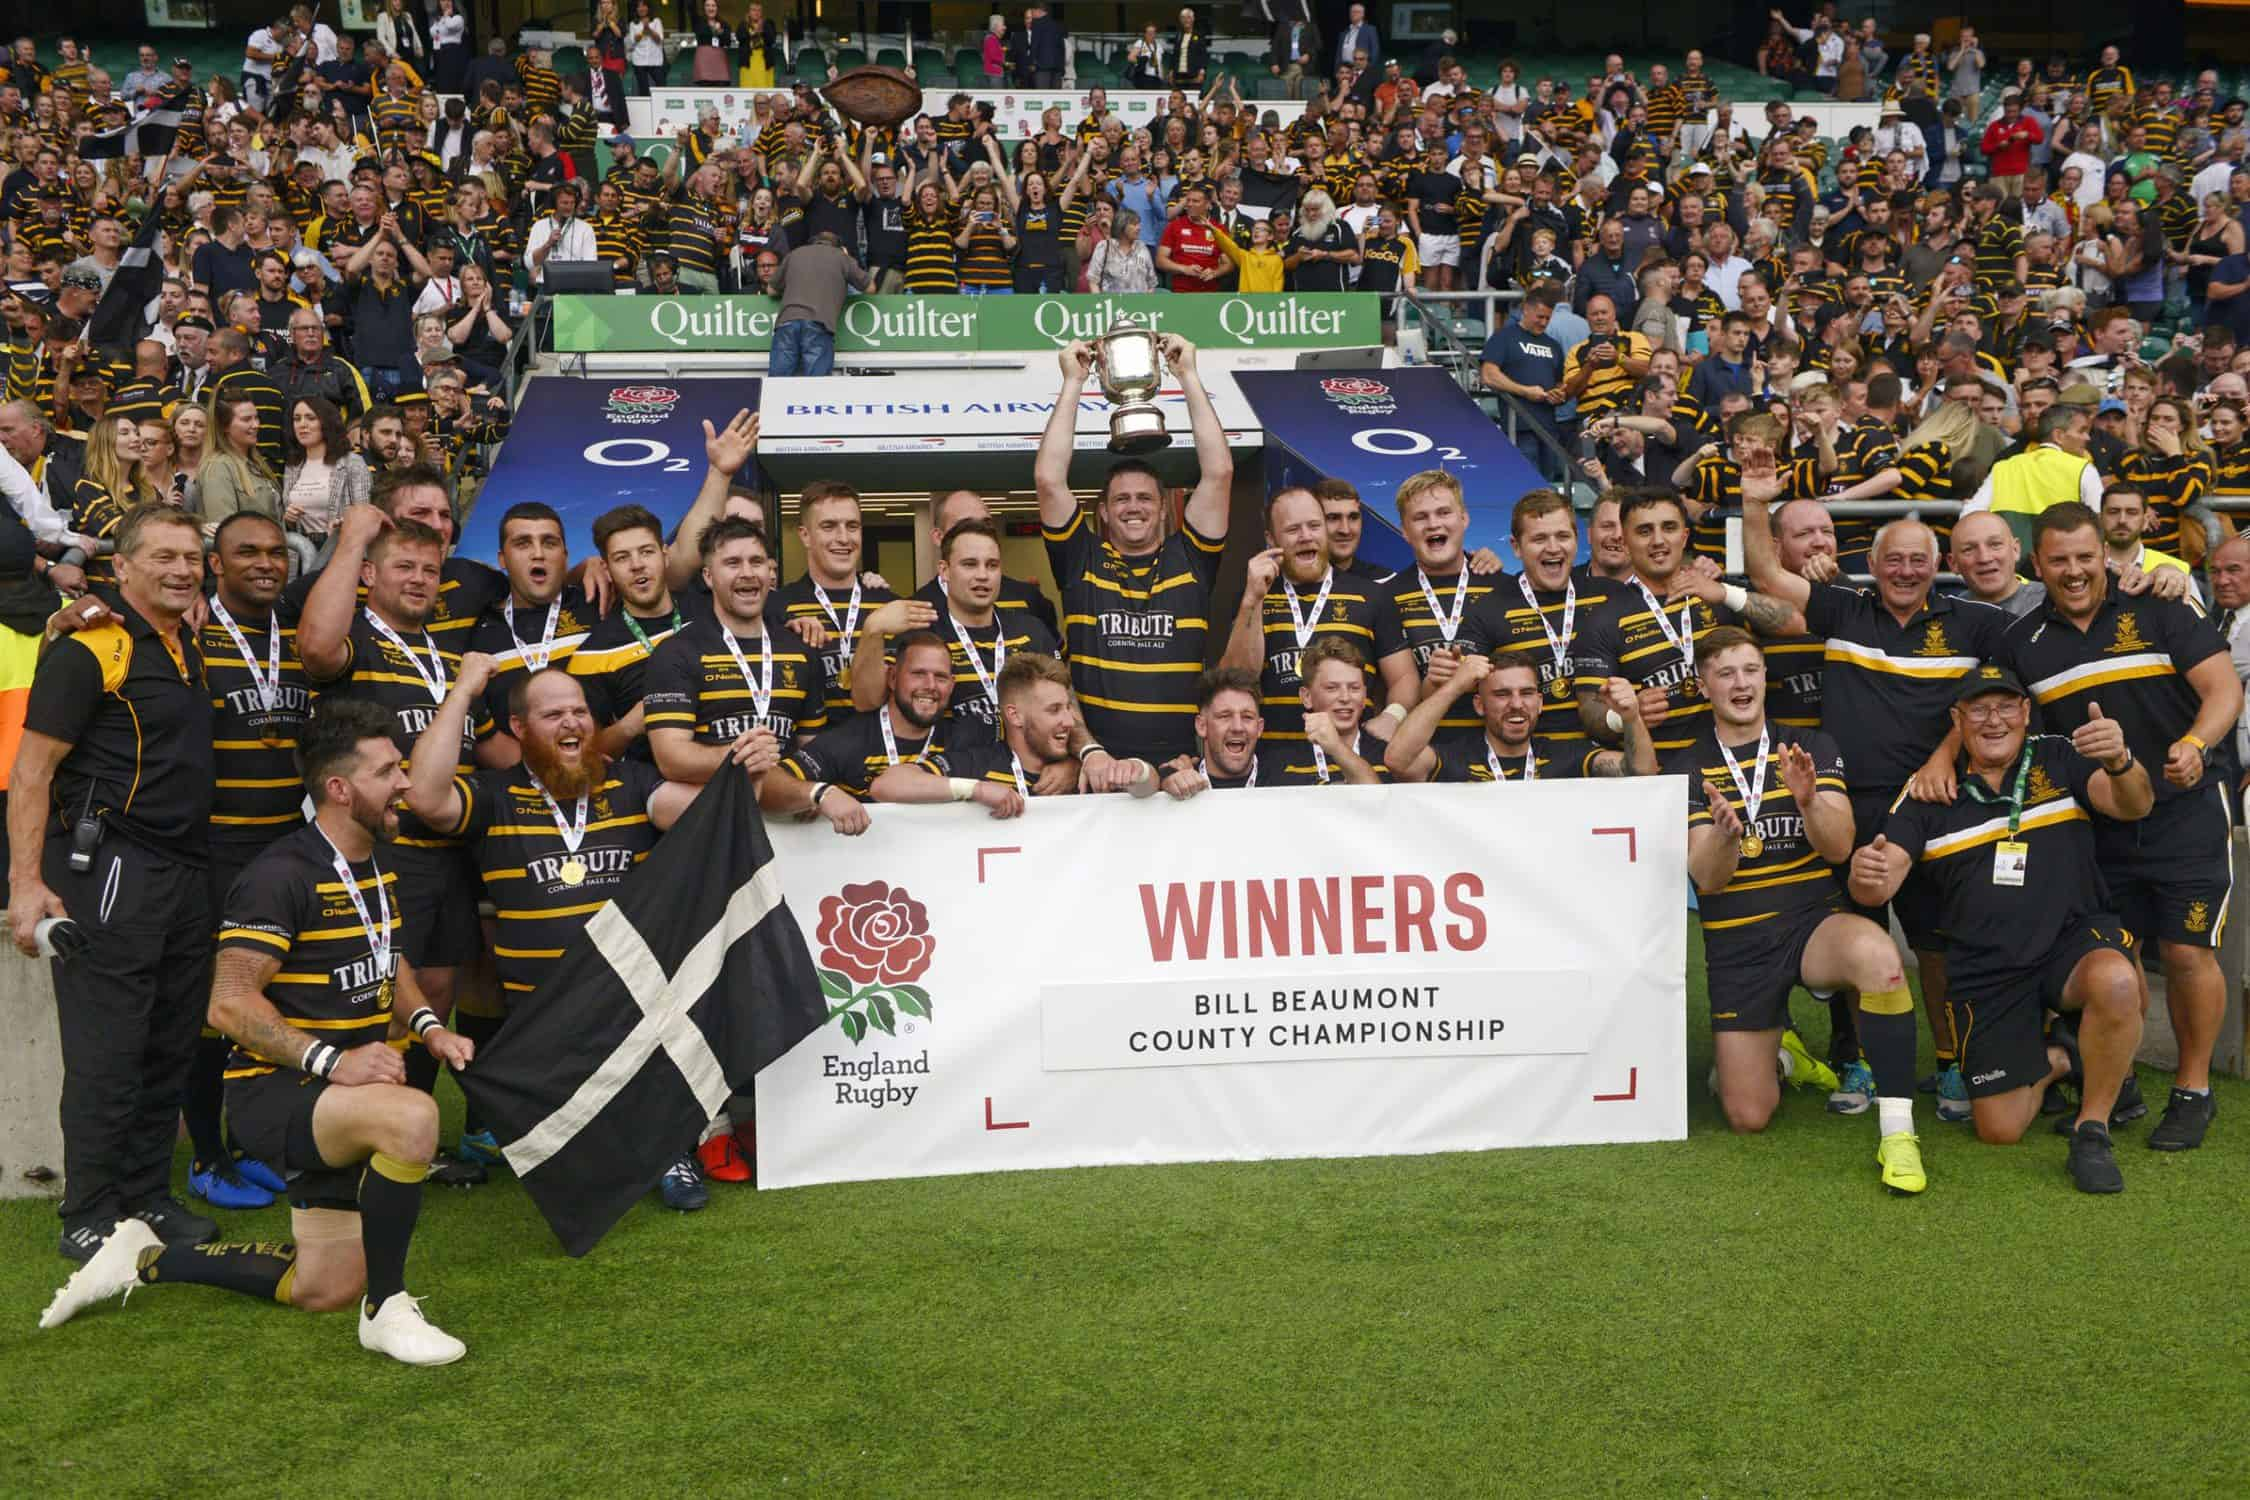 Bill Beaumont Cup Final, London UK – 02 June 2019